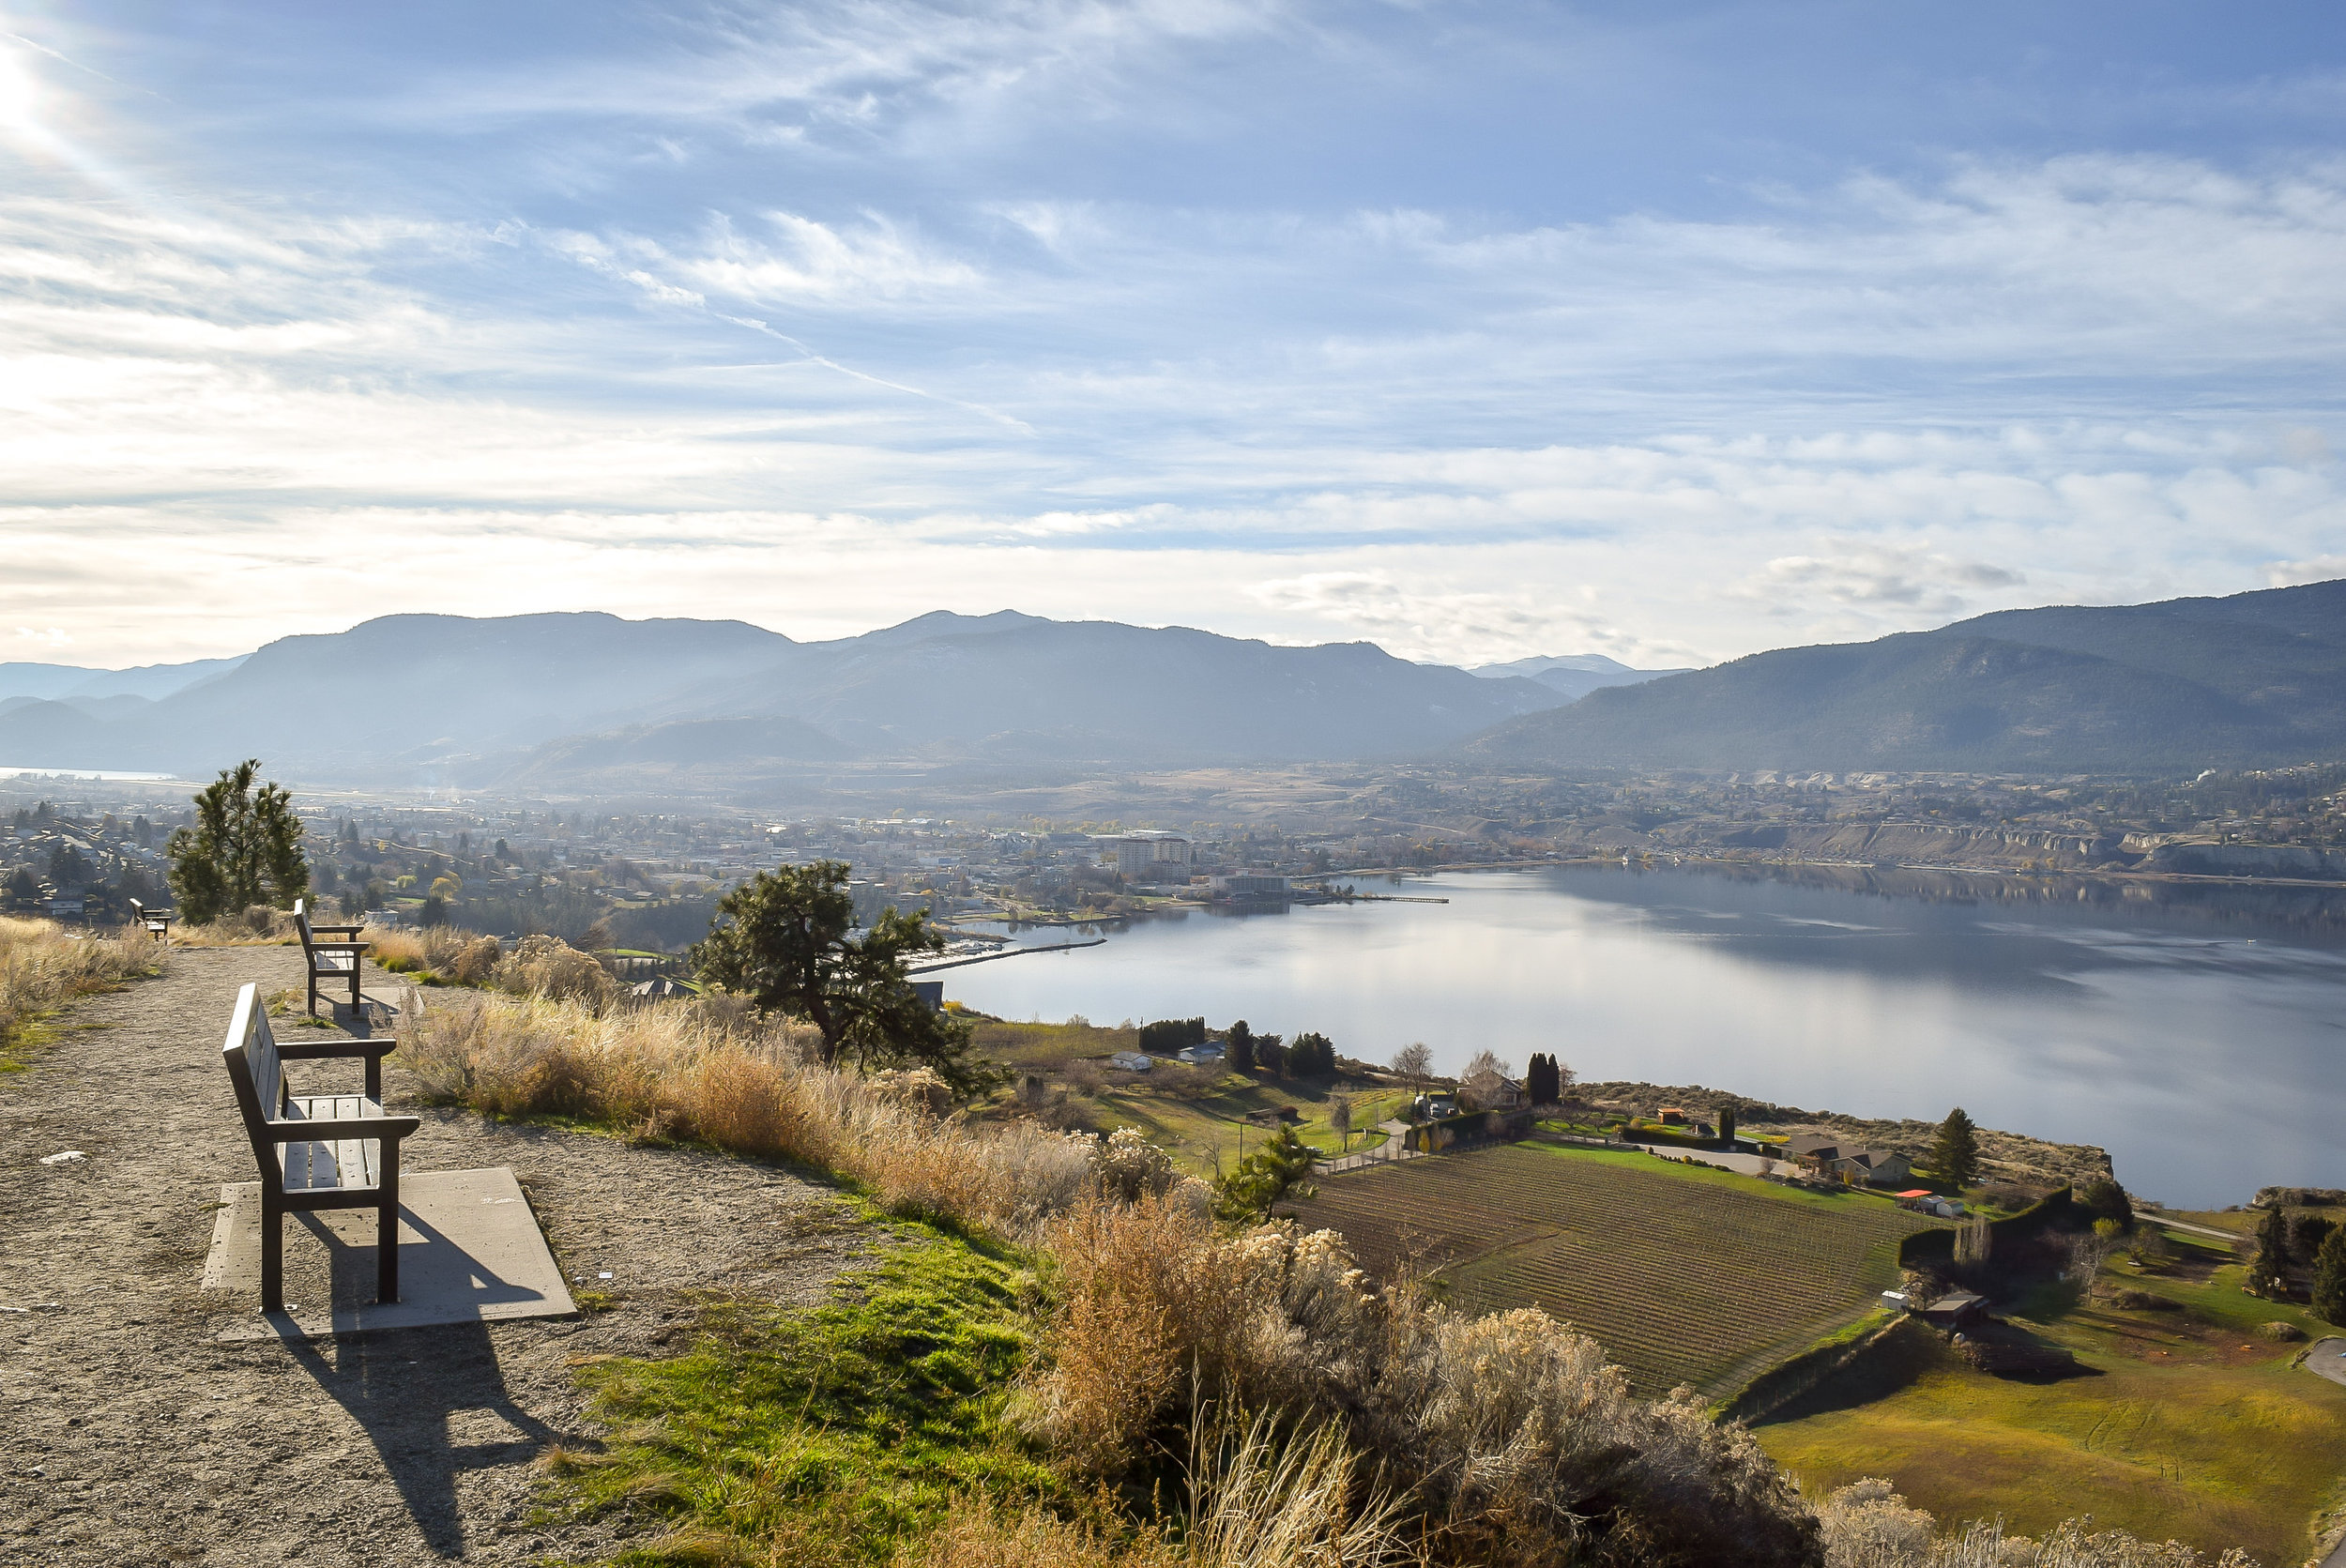 View of Penticton from Munson Mountain